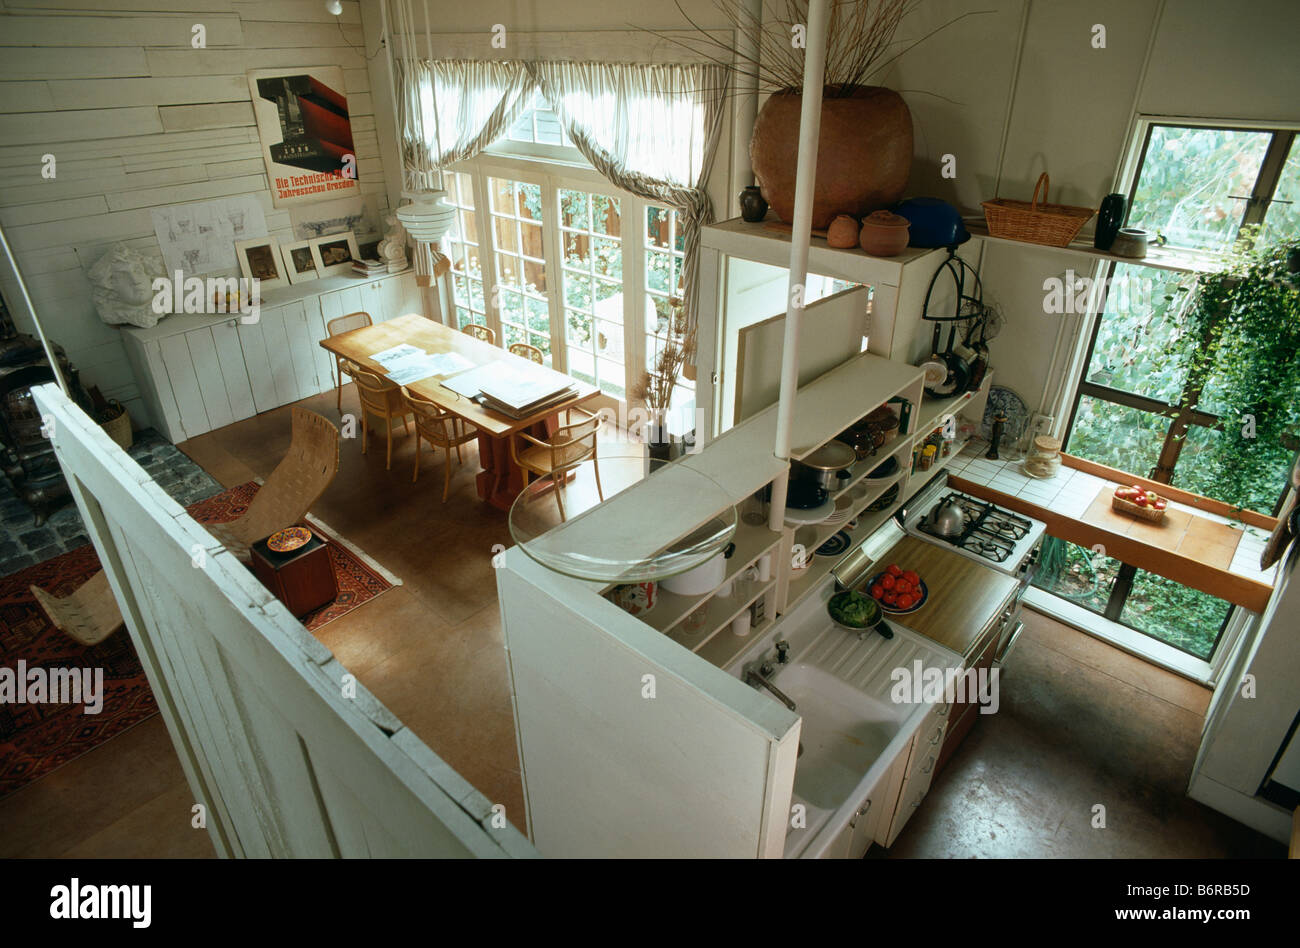 Birdseye view of kitchen and dining room divided by shelf unit in